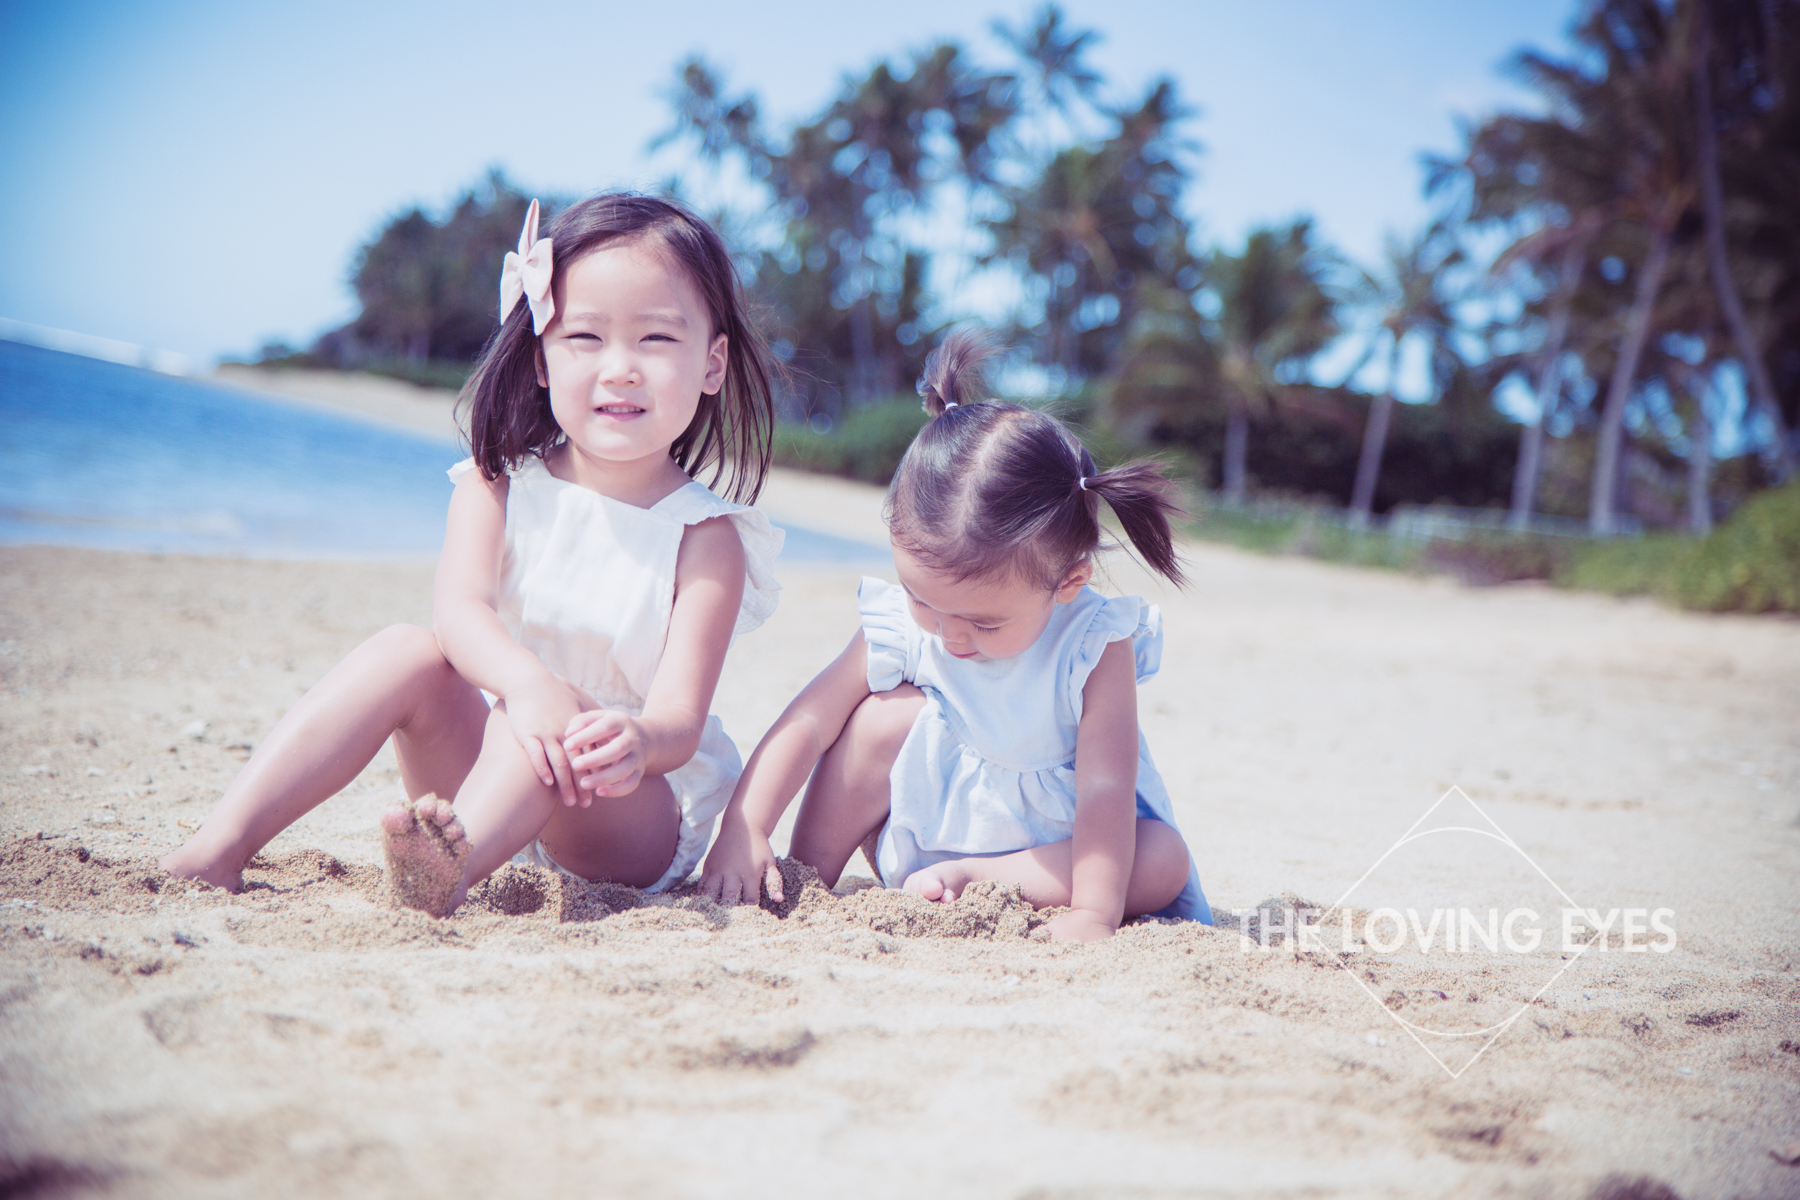 Children photography in Hawaii